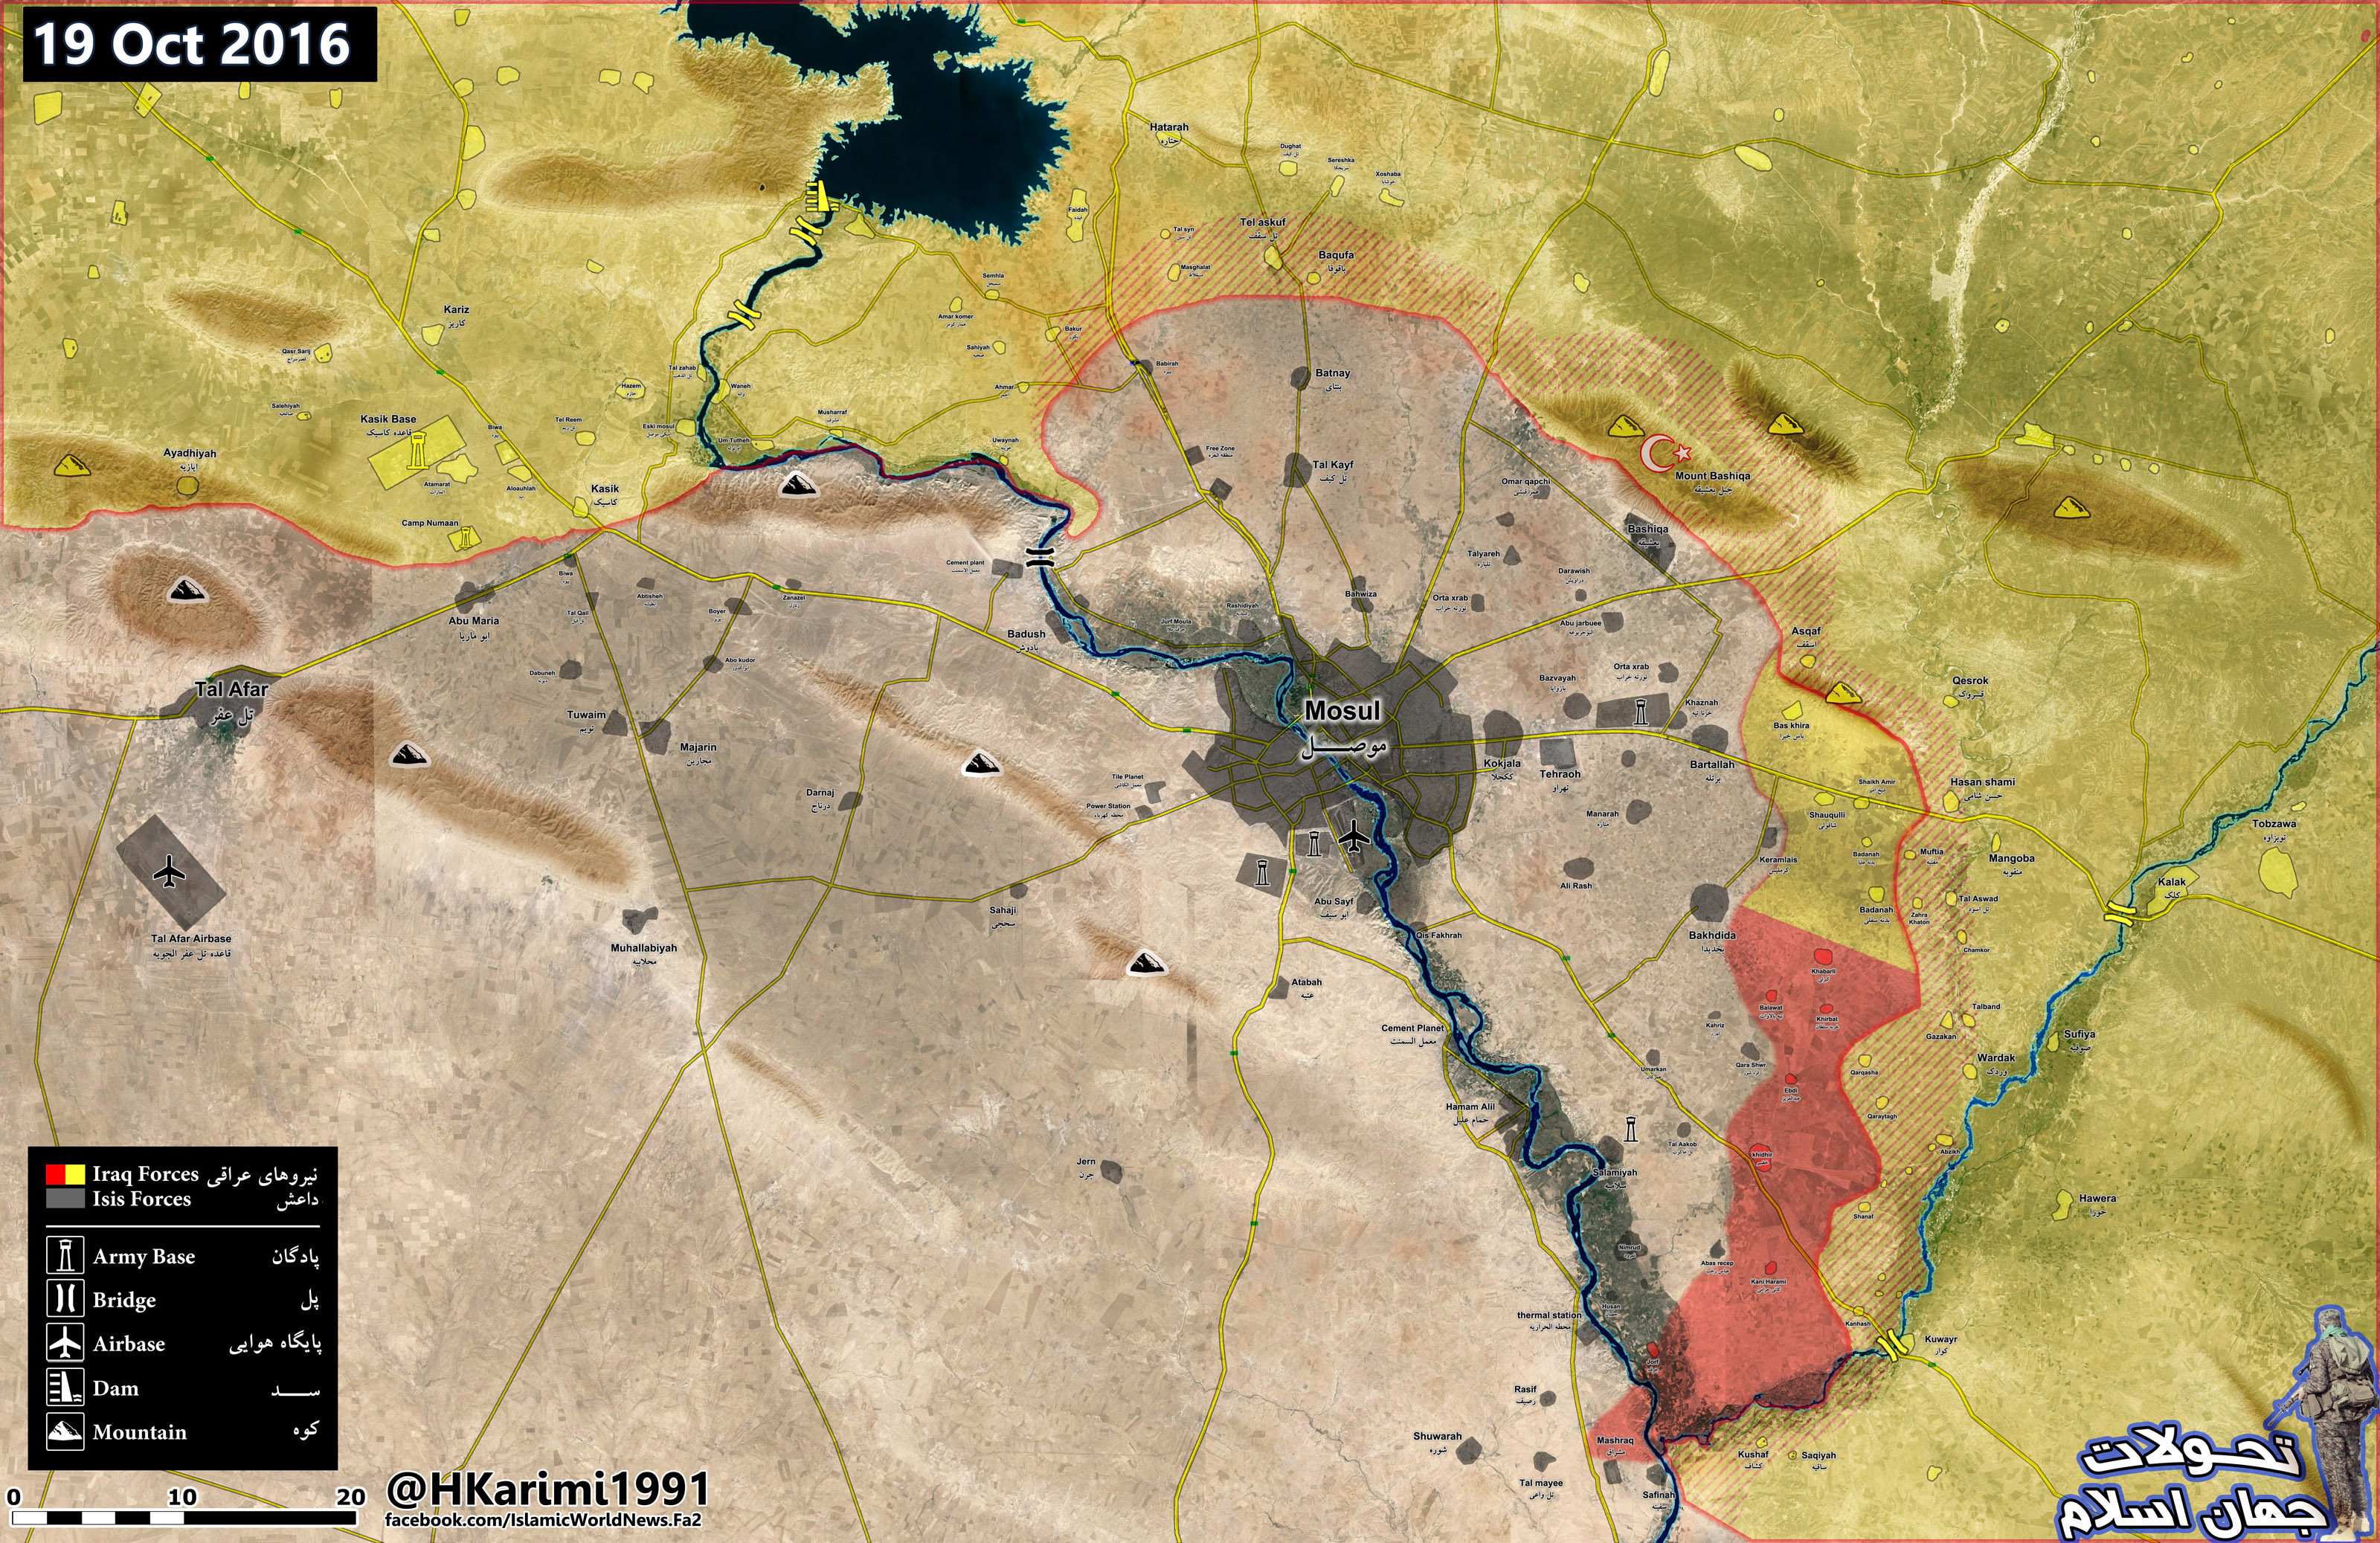 Iraqi Map Update: Results of 3rd Day of Battle for Mosul